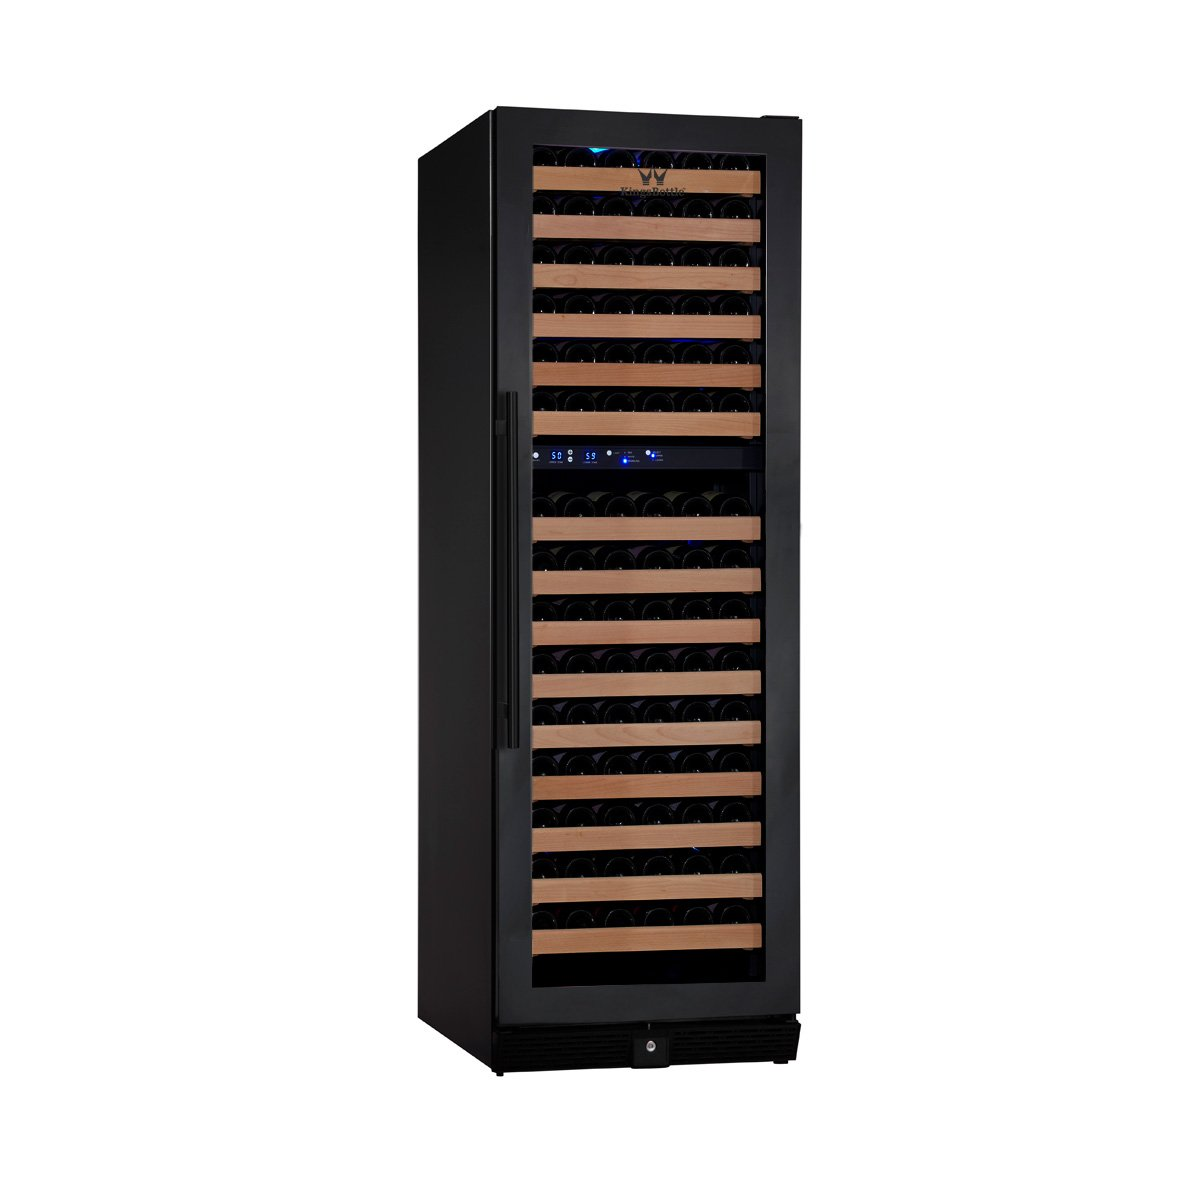 KingsBottle 164 Bottle Dual Zone Wine Cooler, Black with Glass Door